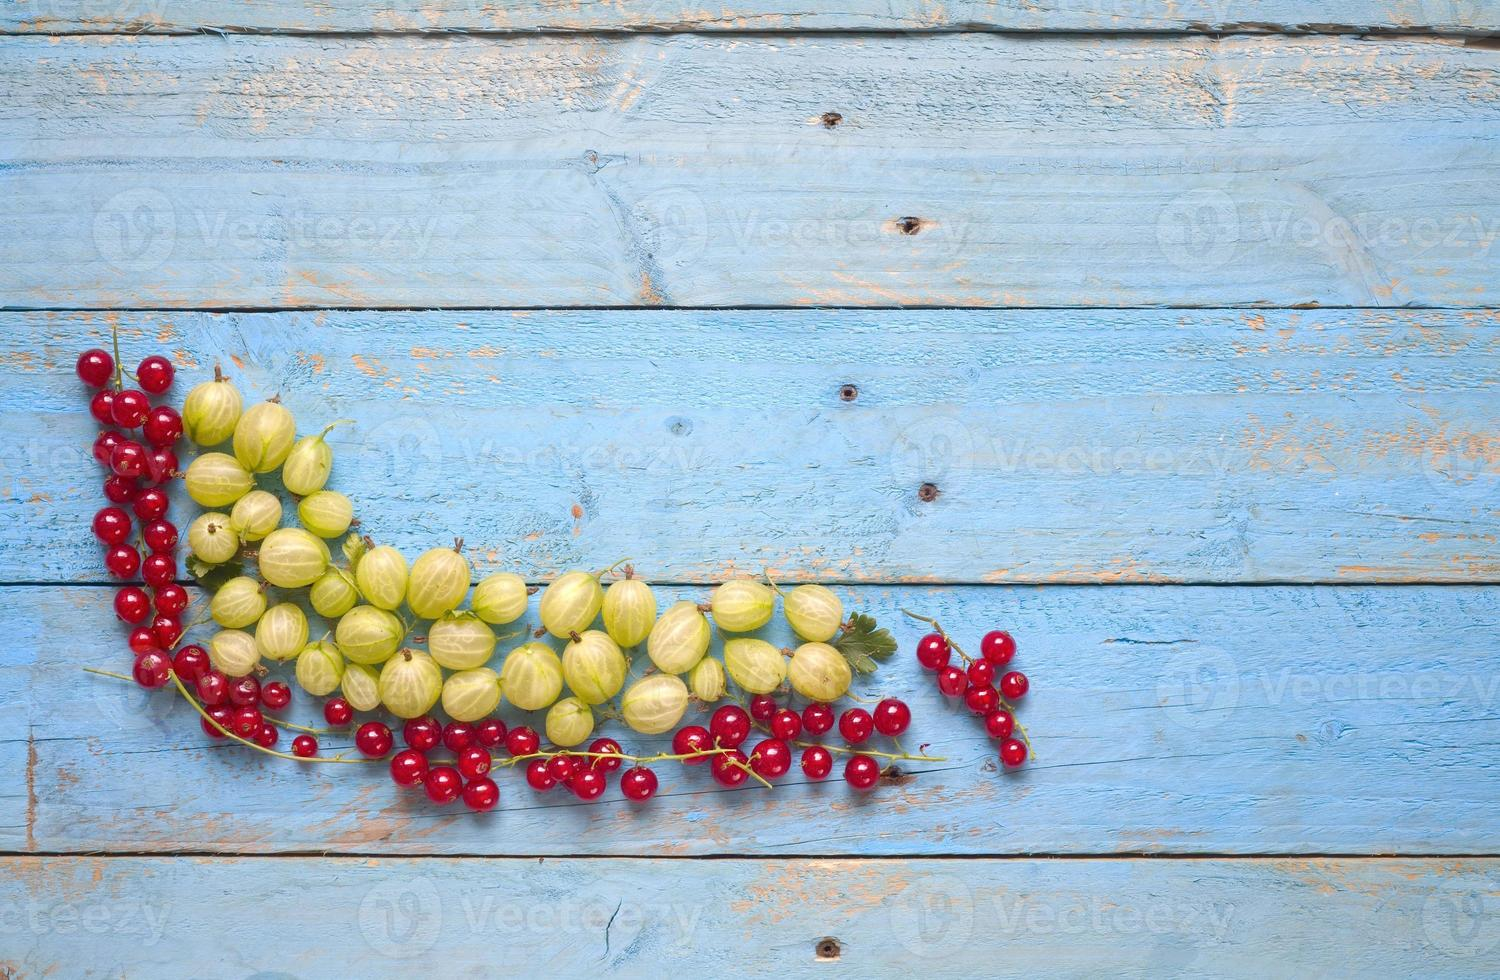 gooseberry and currants, redcurrants, free copy space photo